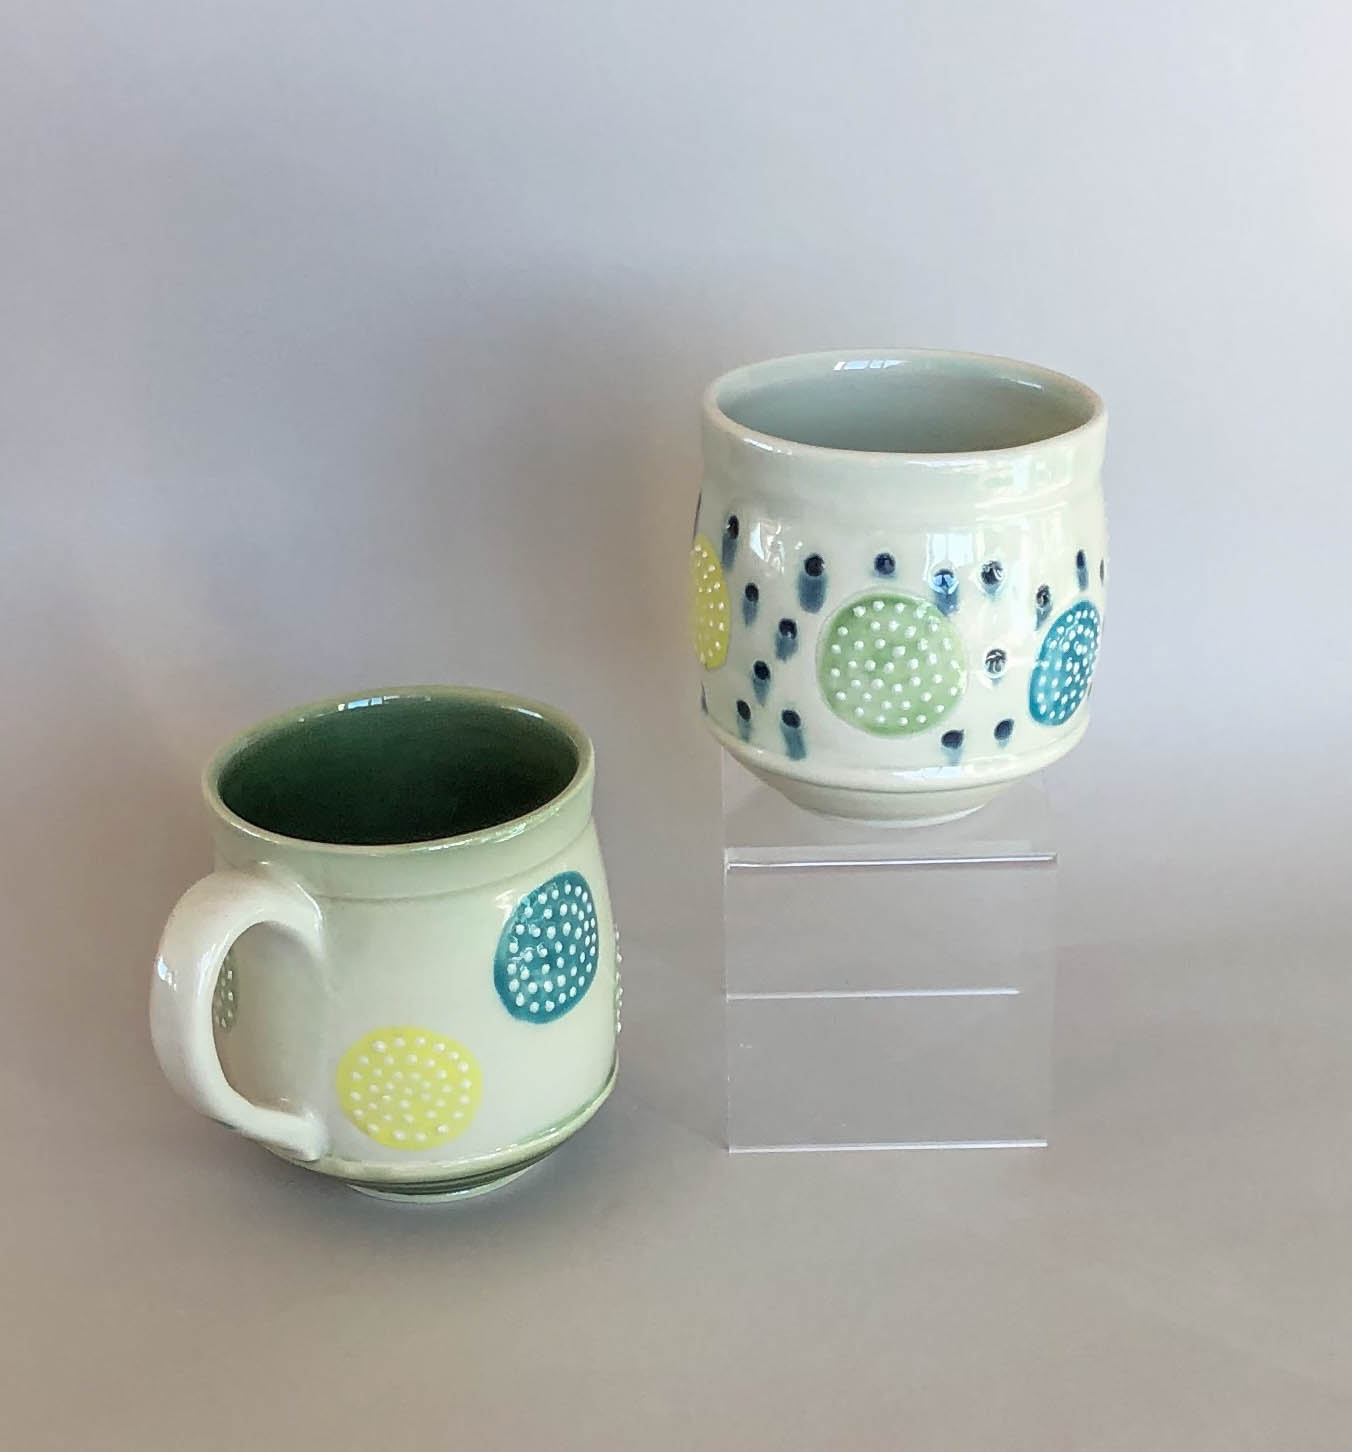 Colorful circles mug and tumbler, wheel thrown porcelain with slip trail design, $42 and $36